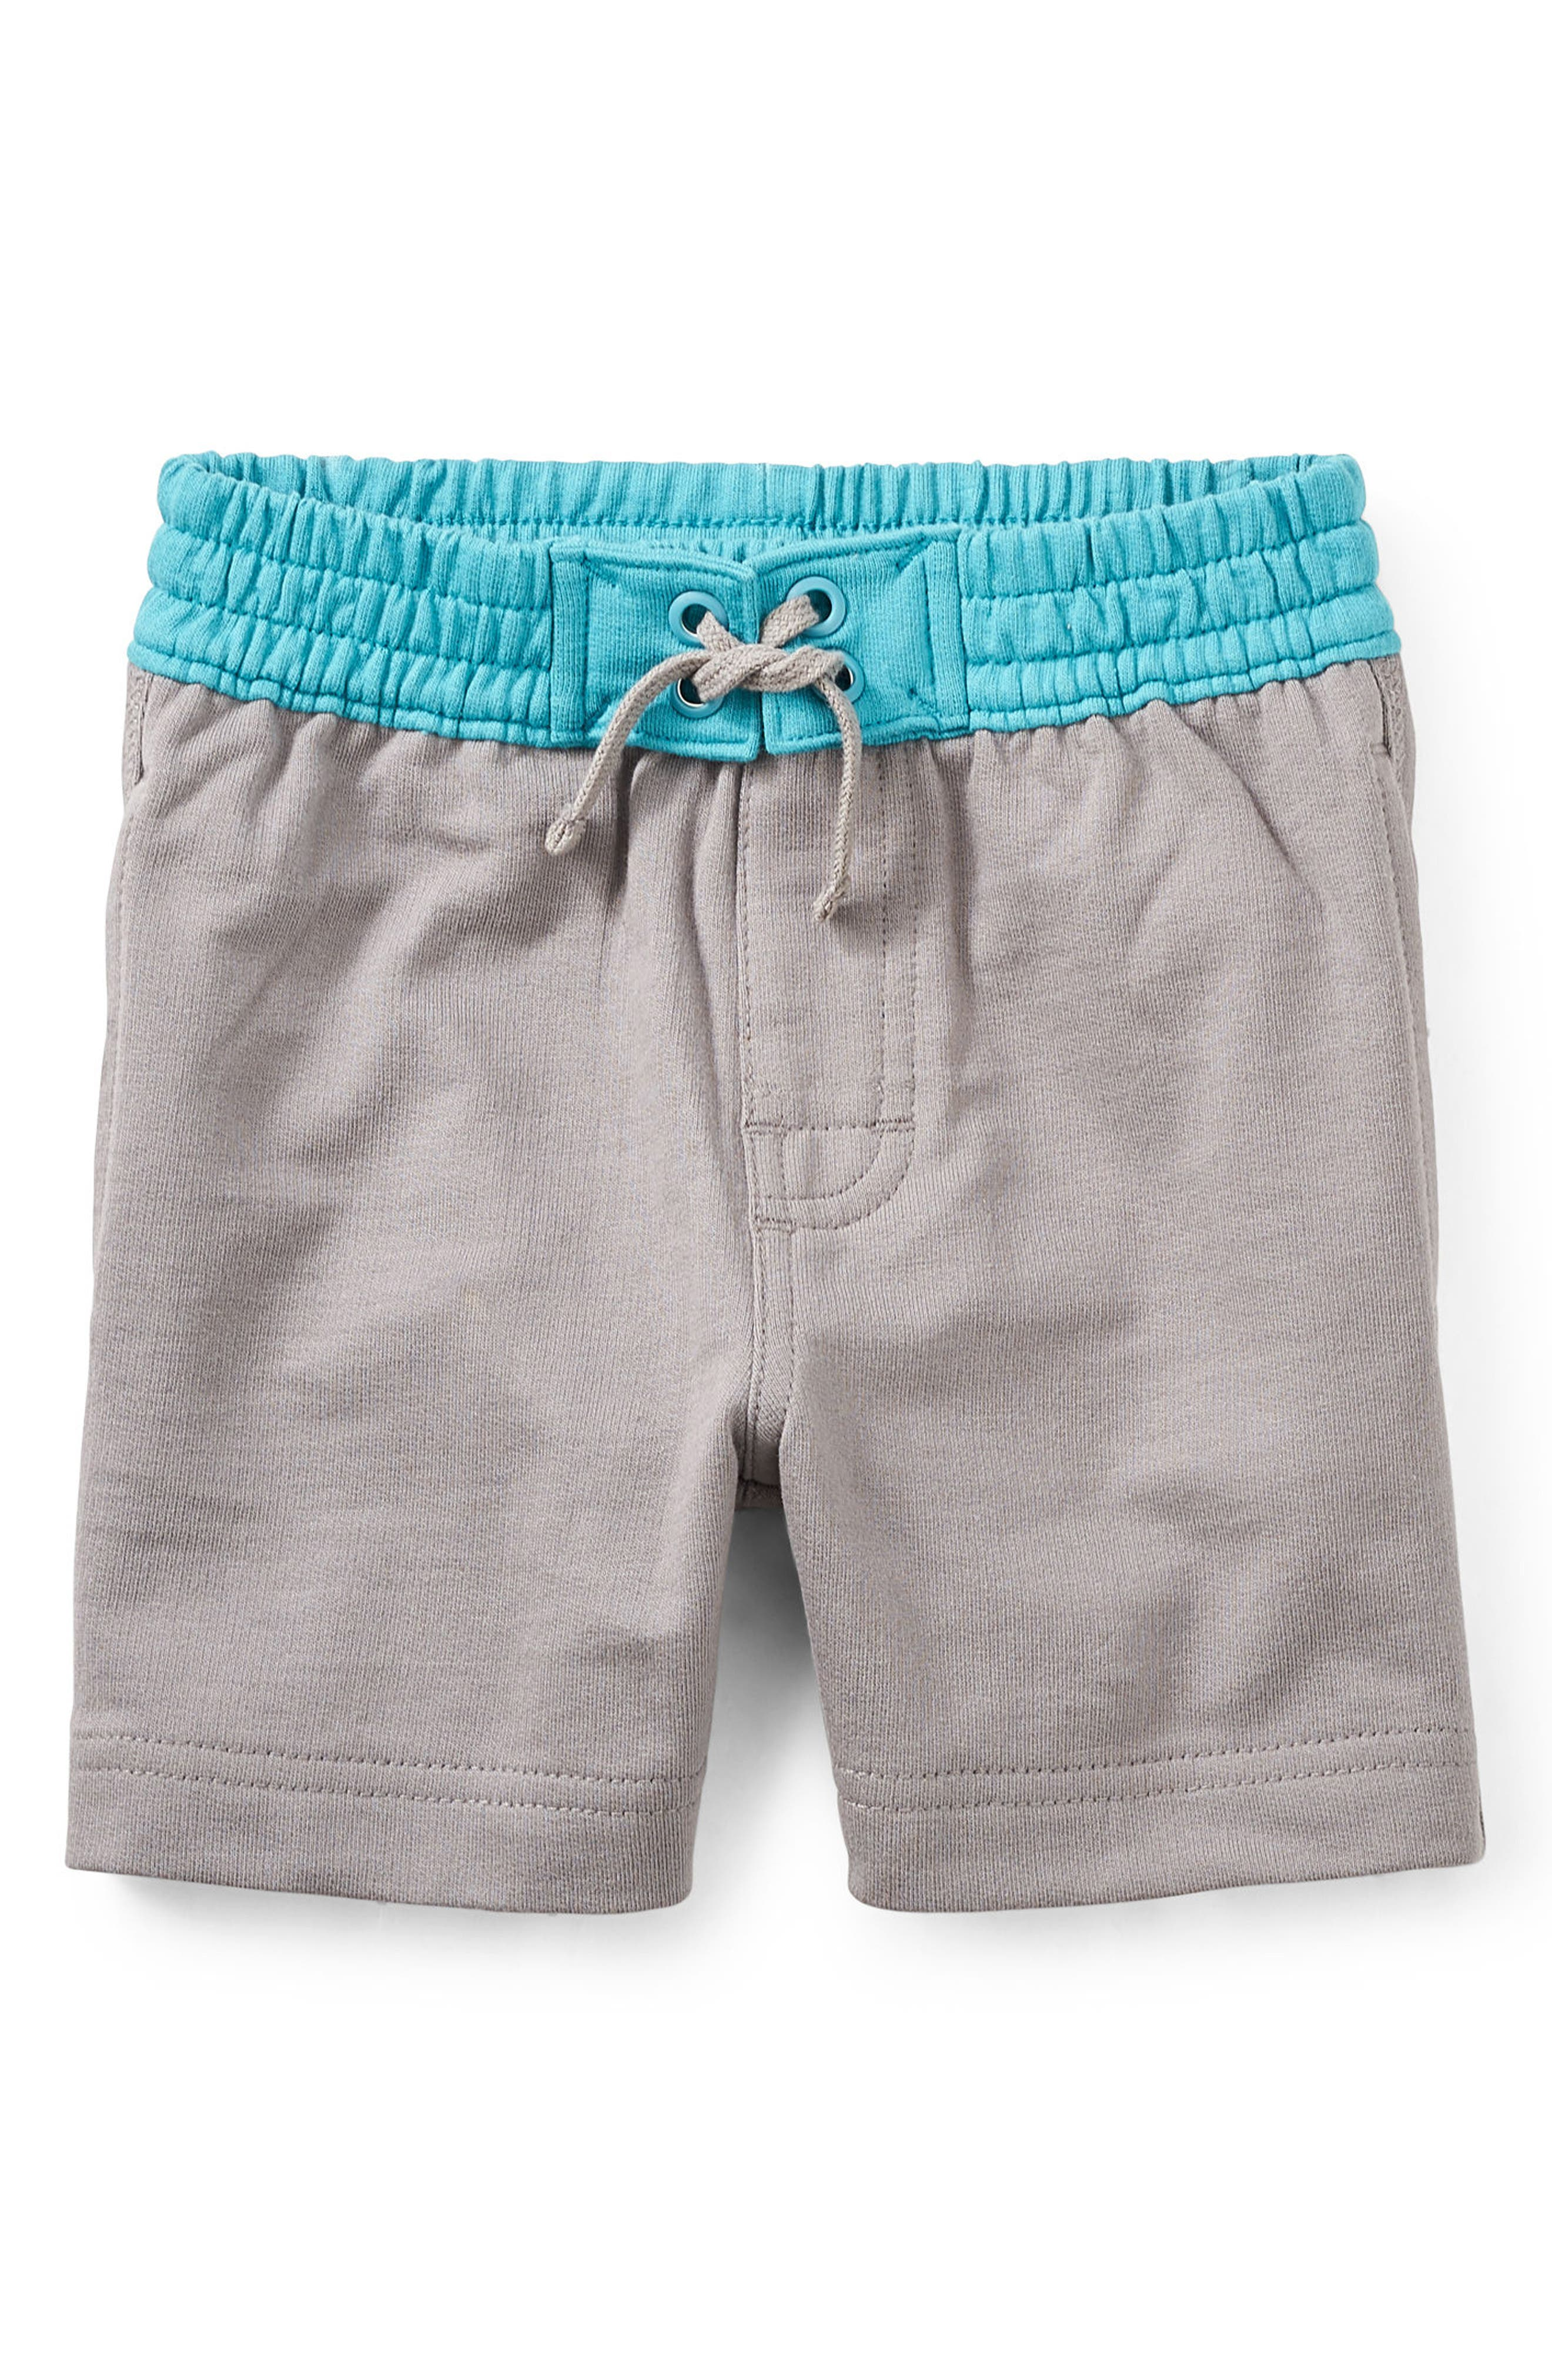 Tea Collection Surf Shorts (Baby Boys)